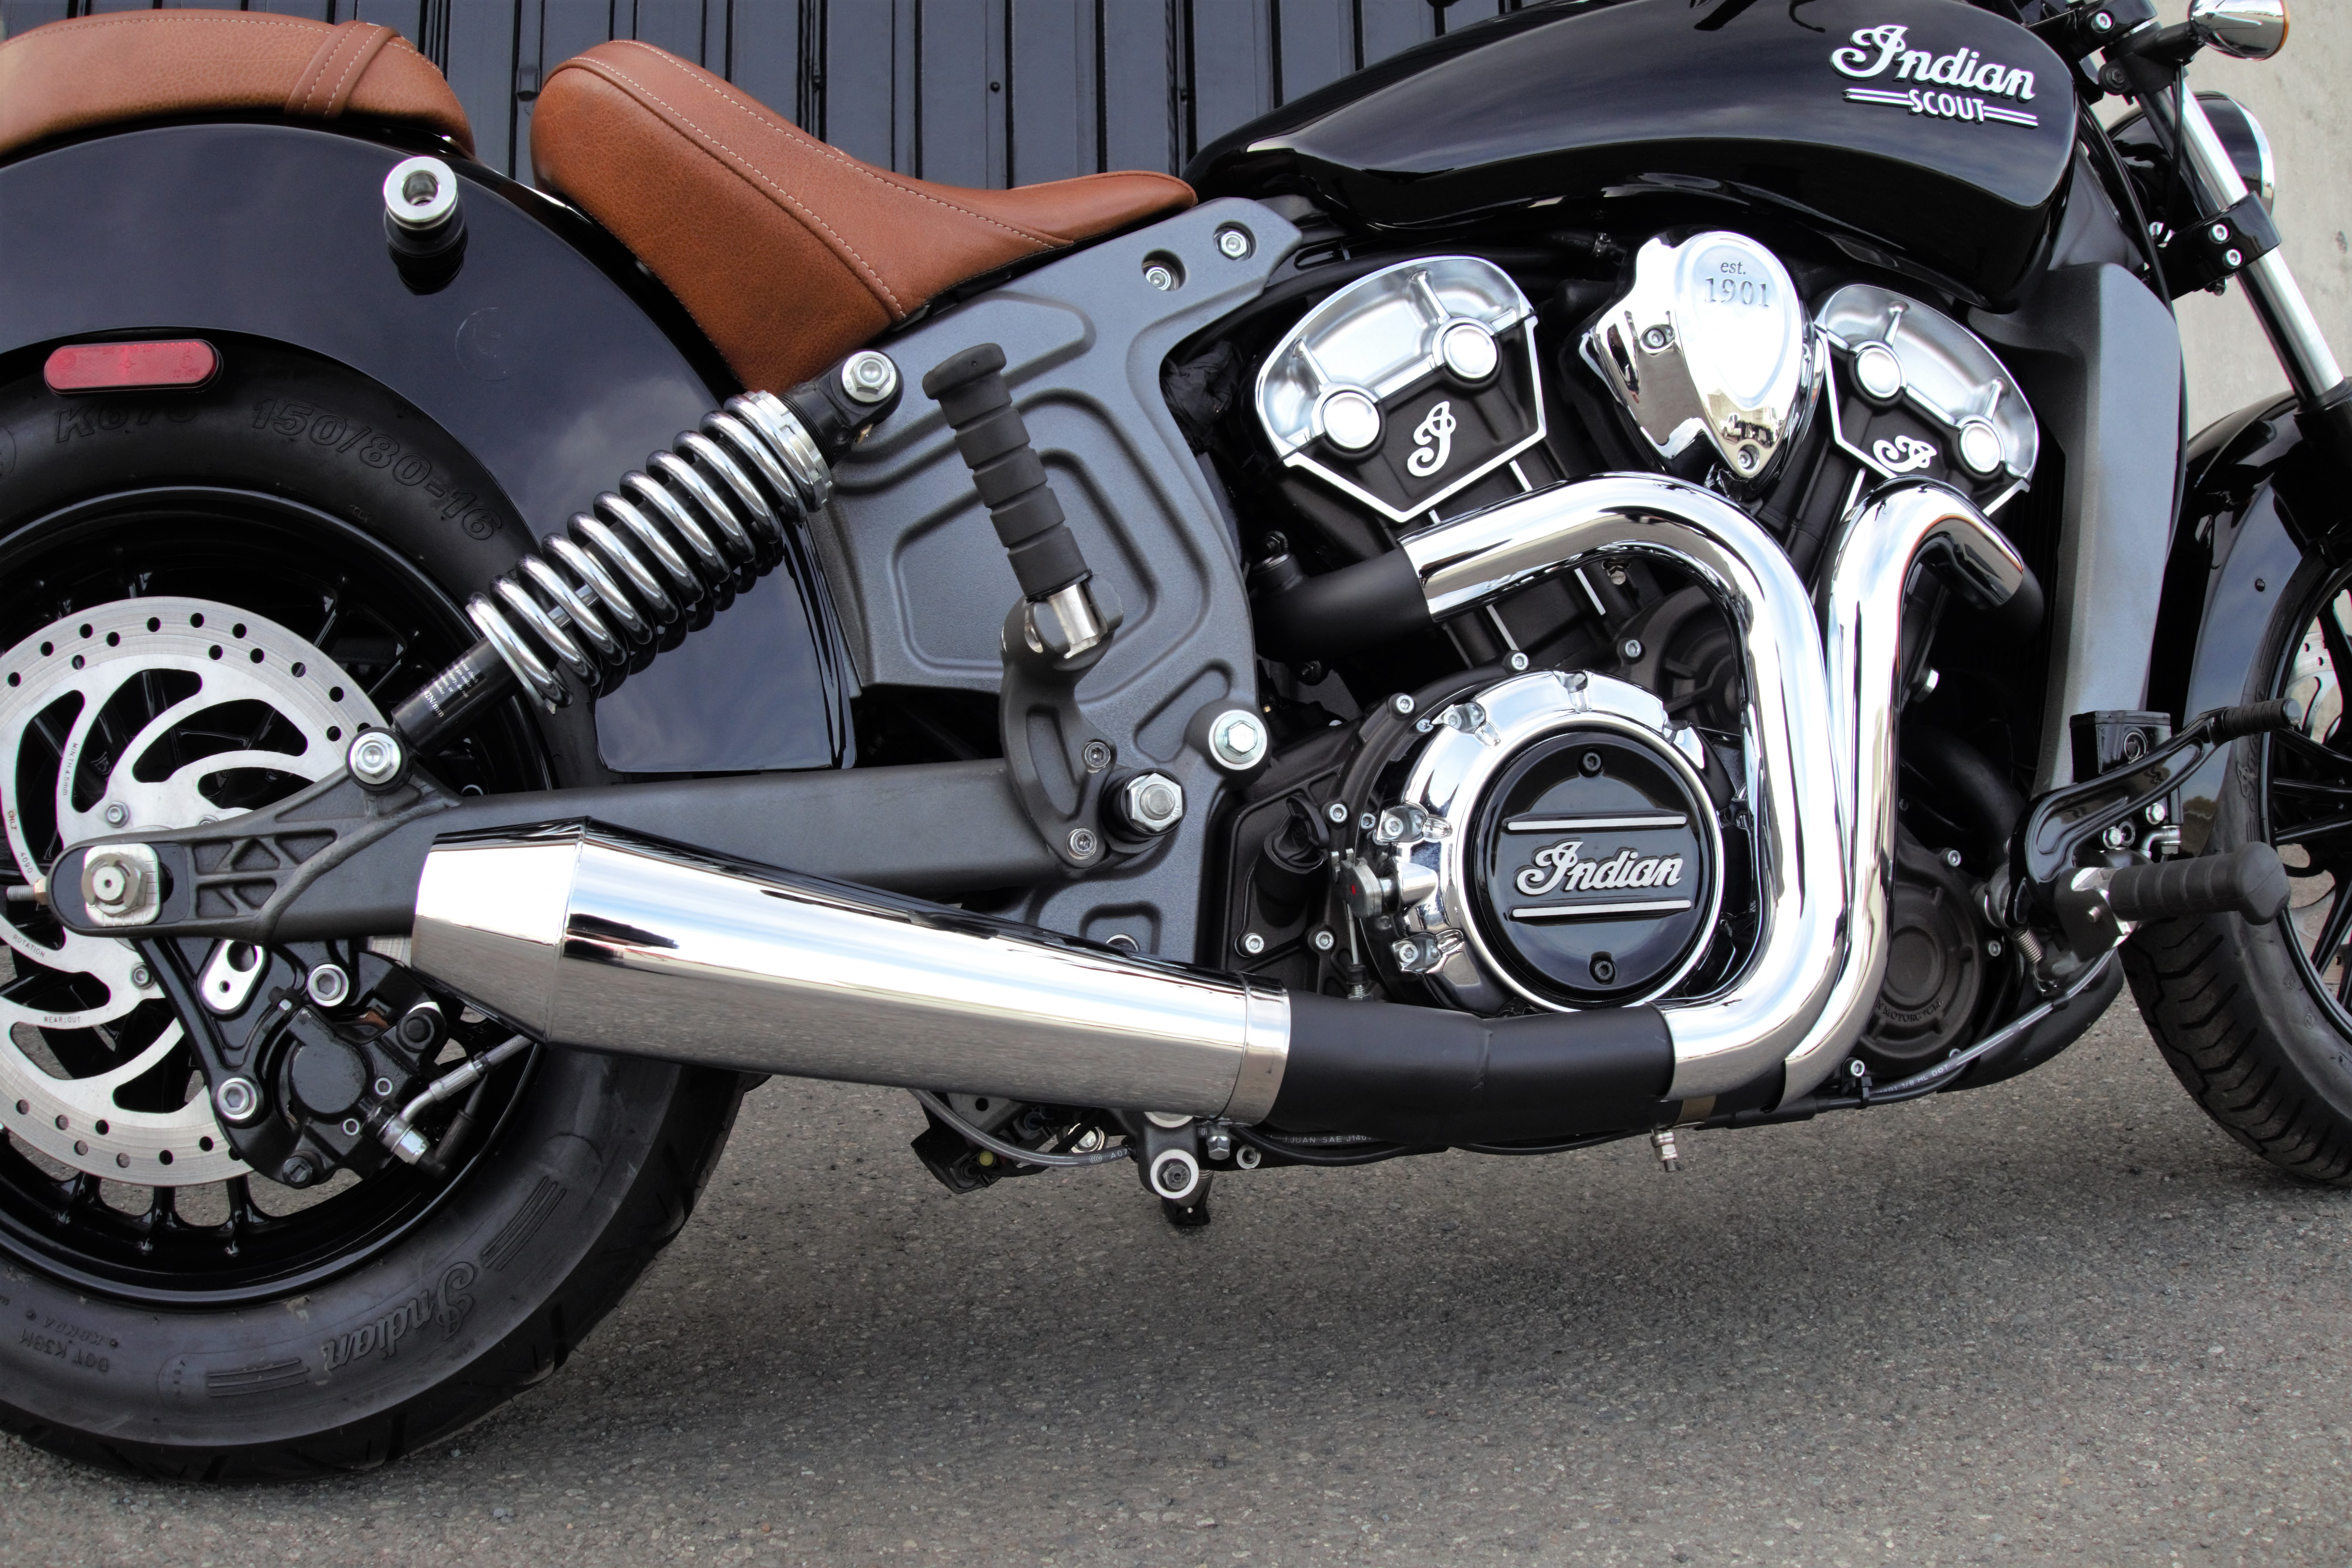 New Exhaust Release Rpw Usa Accelerant Made For Indian Scout